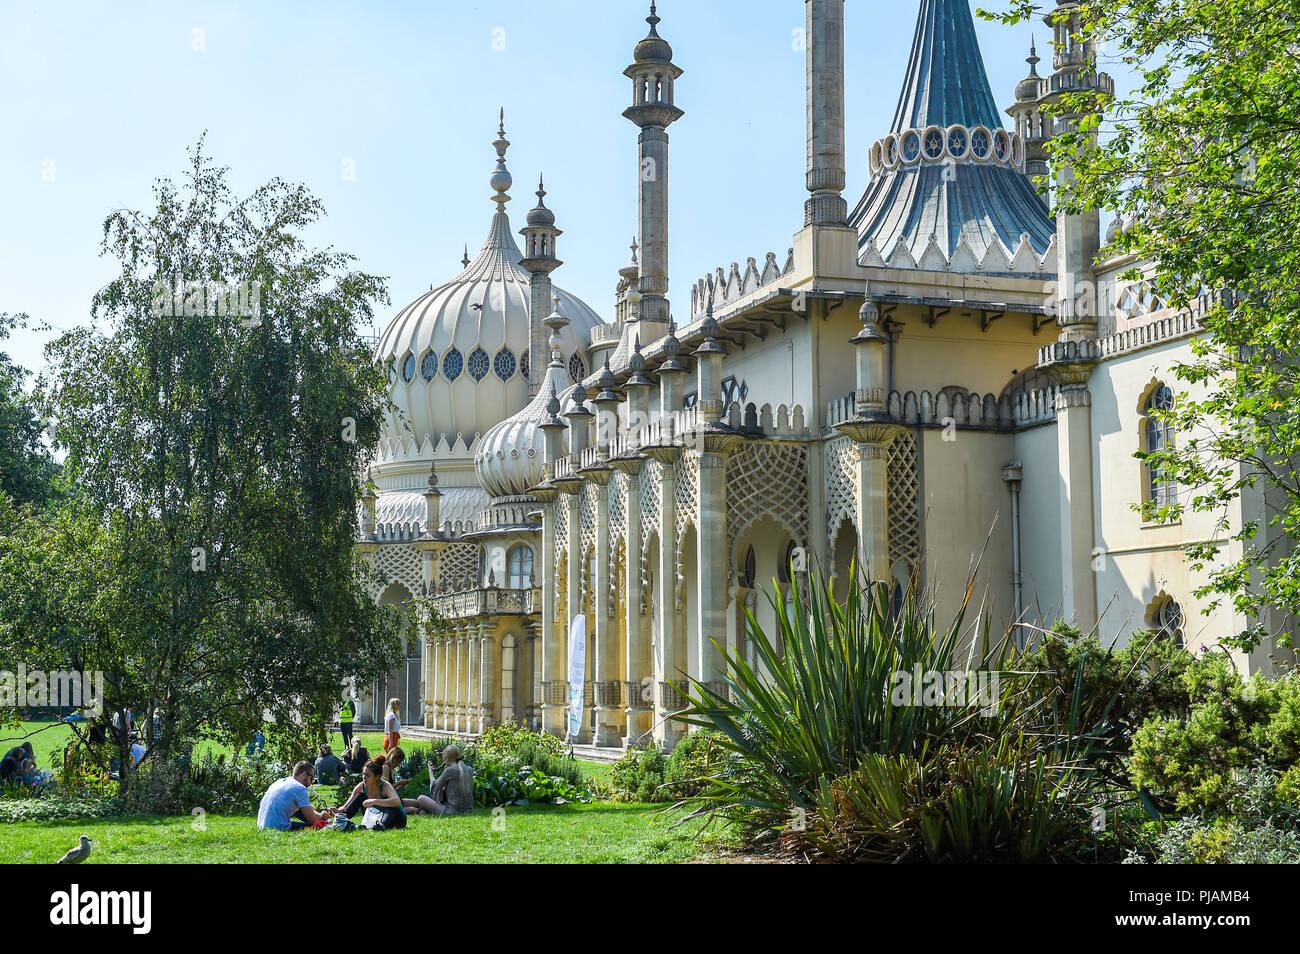 Brighton UK 6th September 2018 - Visitors enjoy a hot sunny day in the Pavilion Gardens Brighton as the weather is forecast to cool down over the next few days Credit: Simon Dack/Alamy Live News - Stock Image